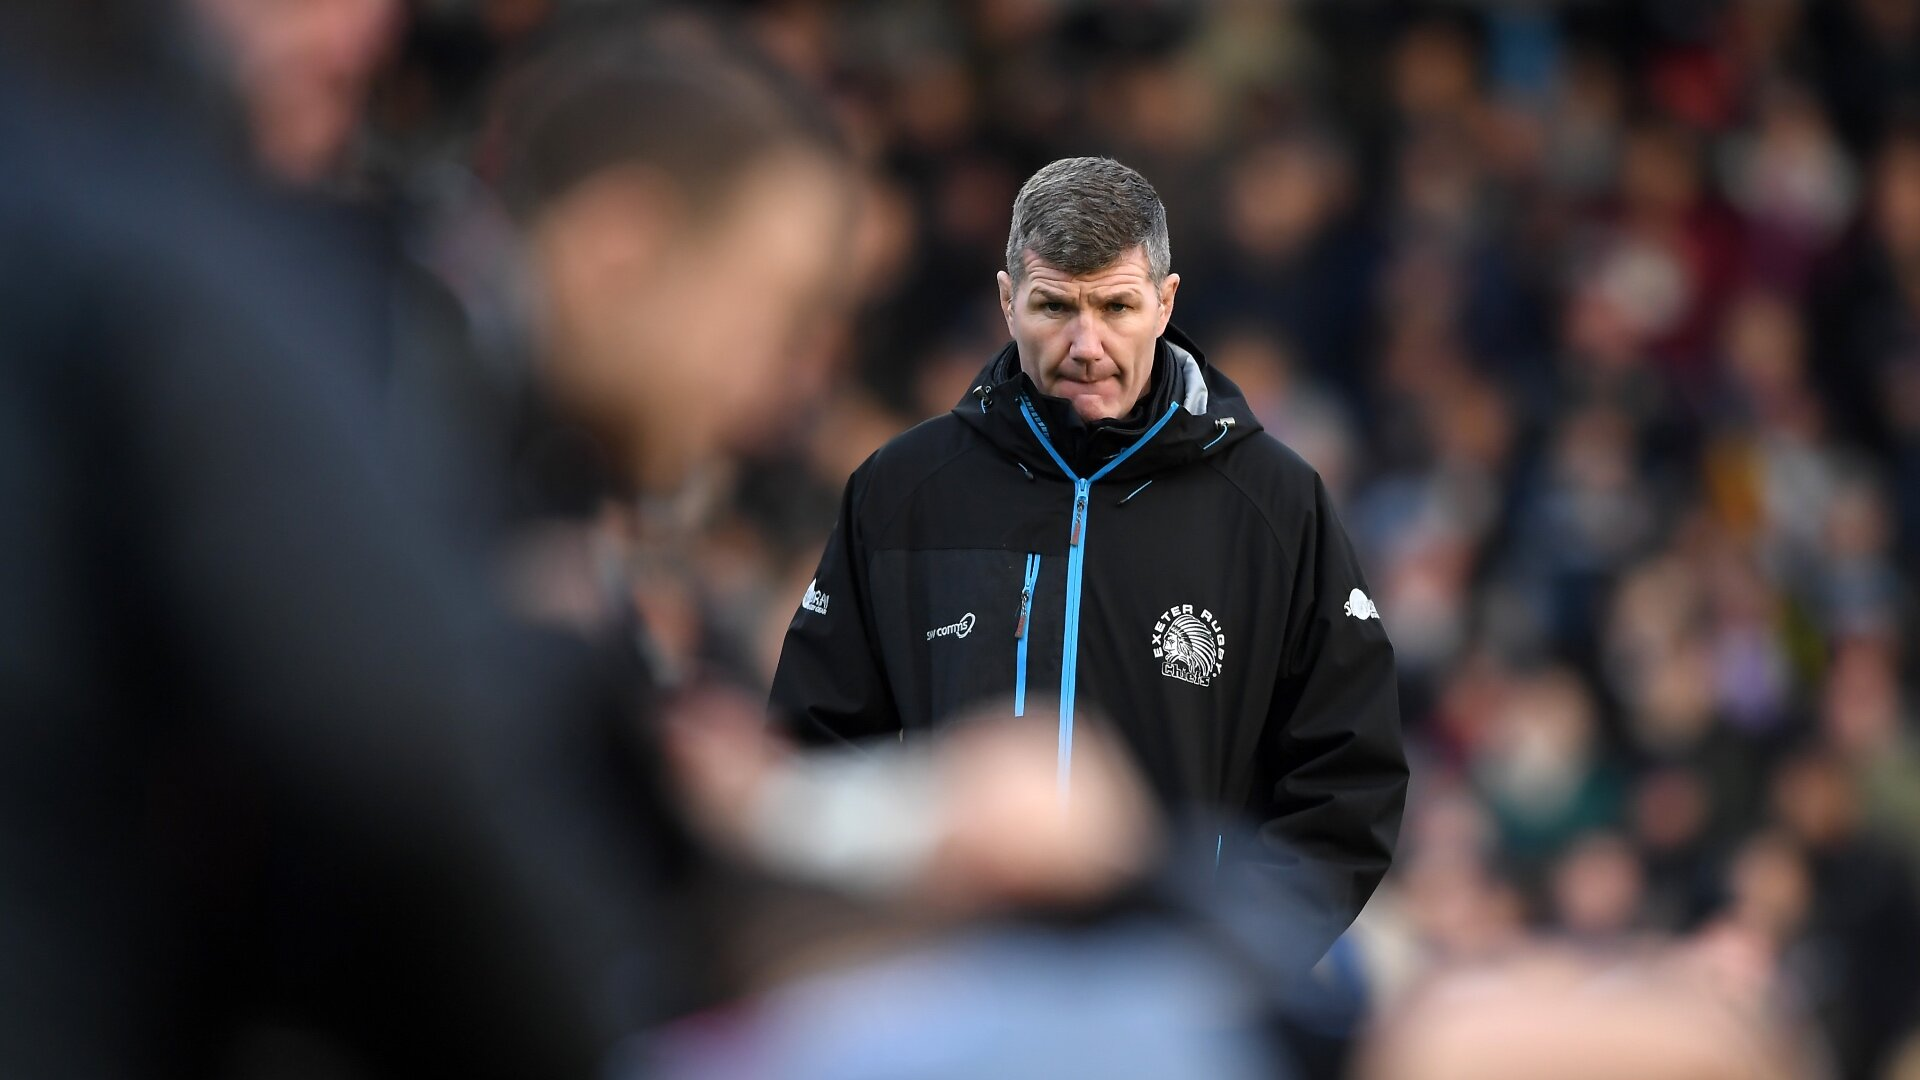 Rob Baxter's comments haven't covered him in glory - Andy Goode